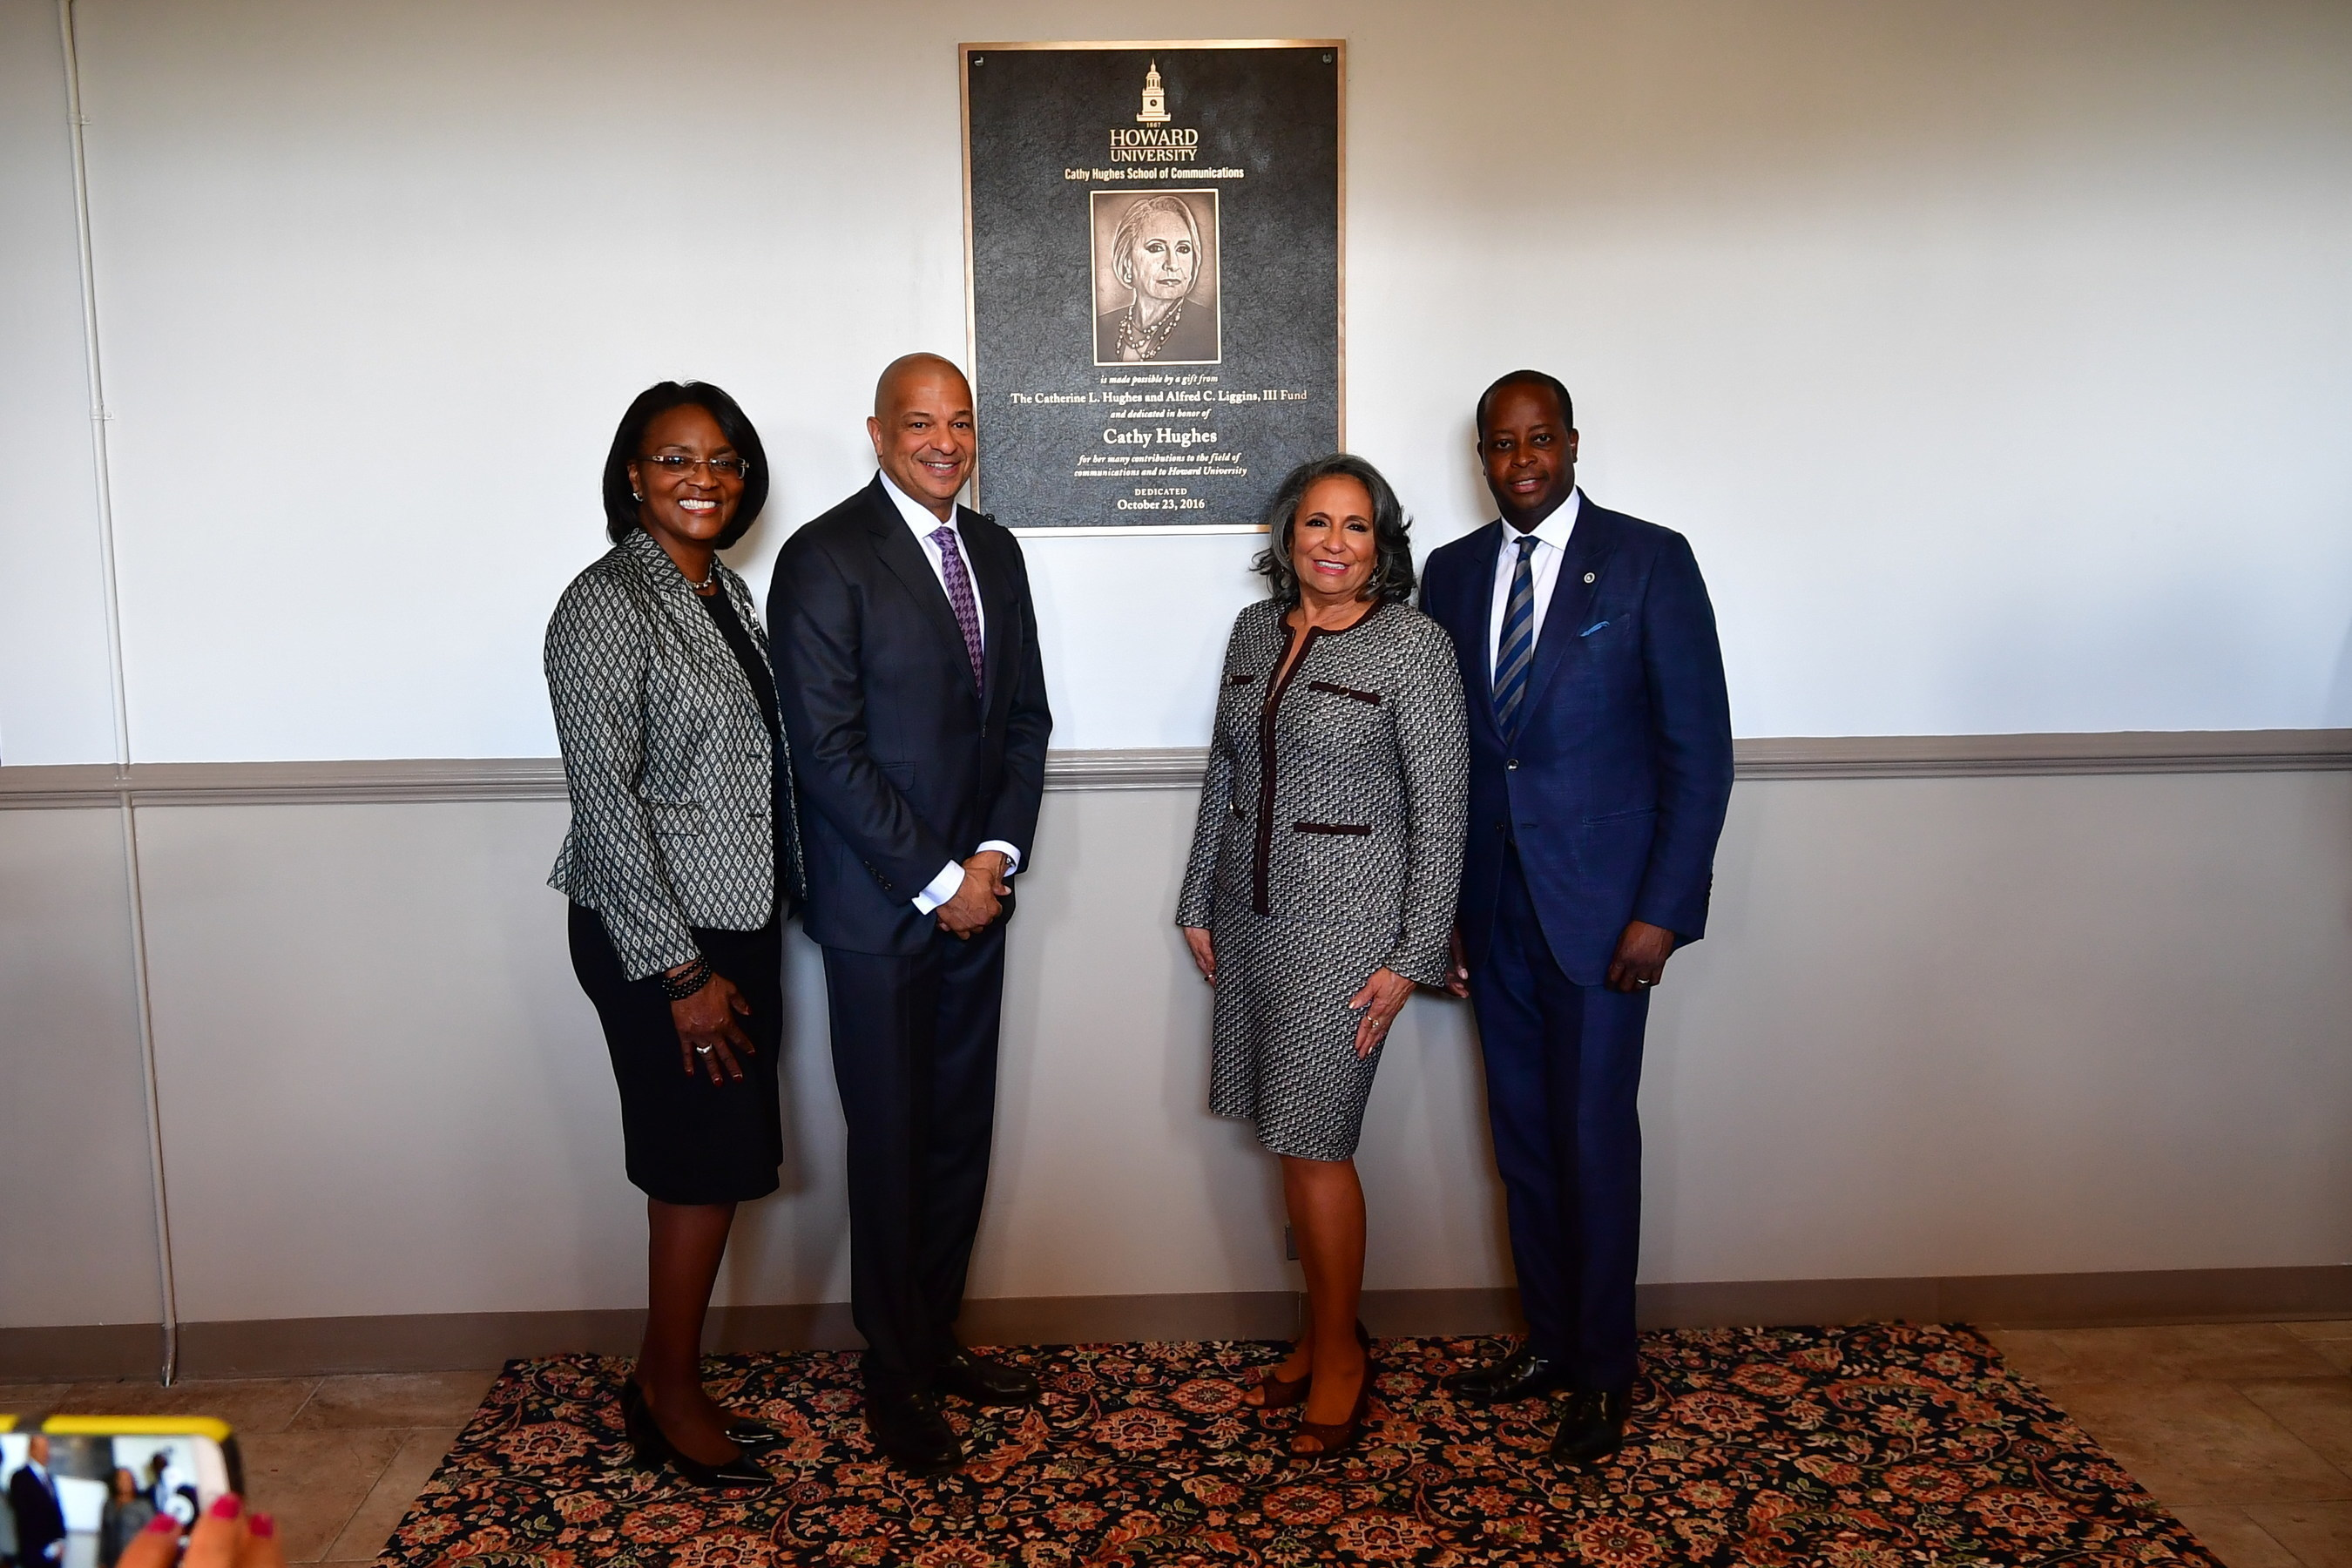 Howard University Honors Radio One, Inc. Founder And Chairperson Cathy Hughes As New Namesake For Its School Of Communications With Star-Studded Unveiling Ceremony And Ce